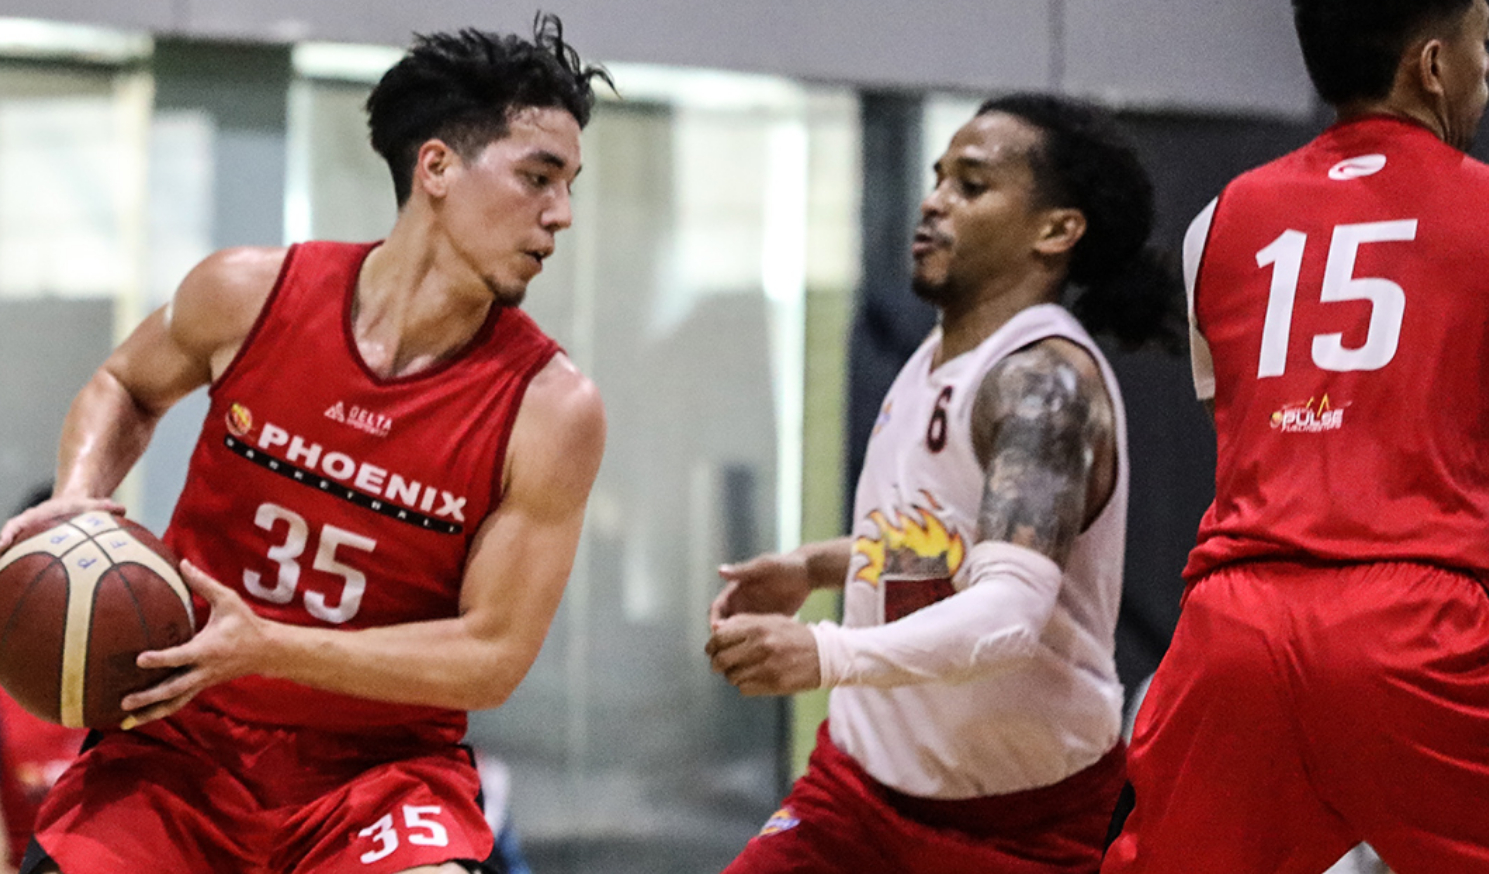 Phoenix def. San Miguel, 108-90 (VIDEO) Phoenix Super Basketball Tournament 2020